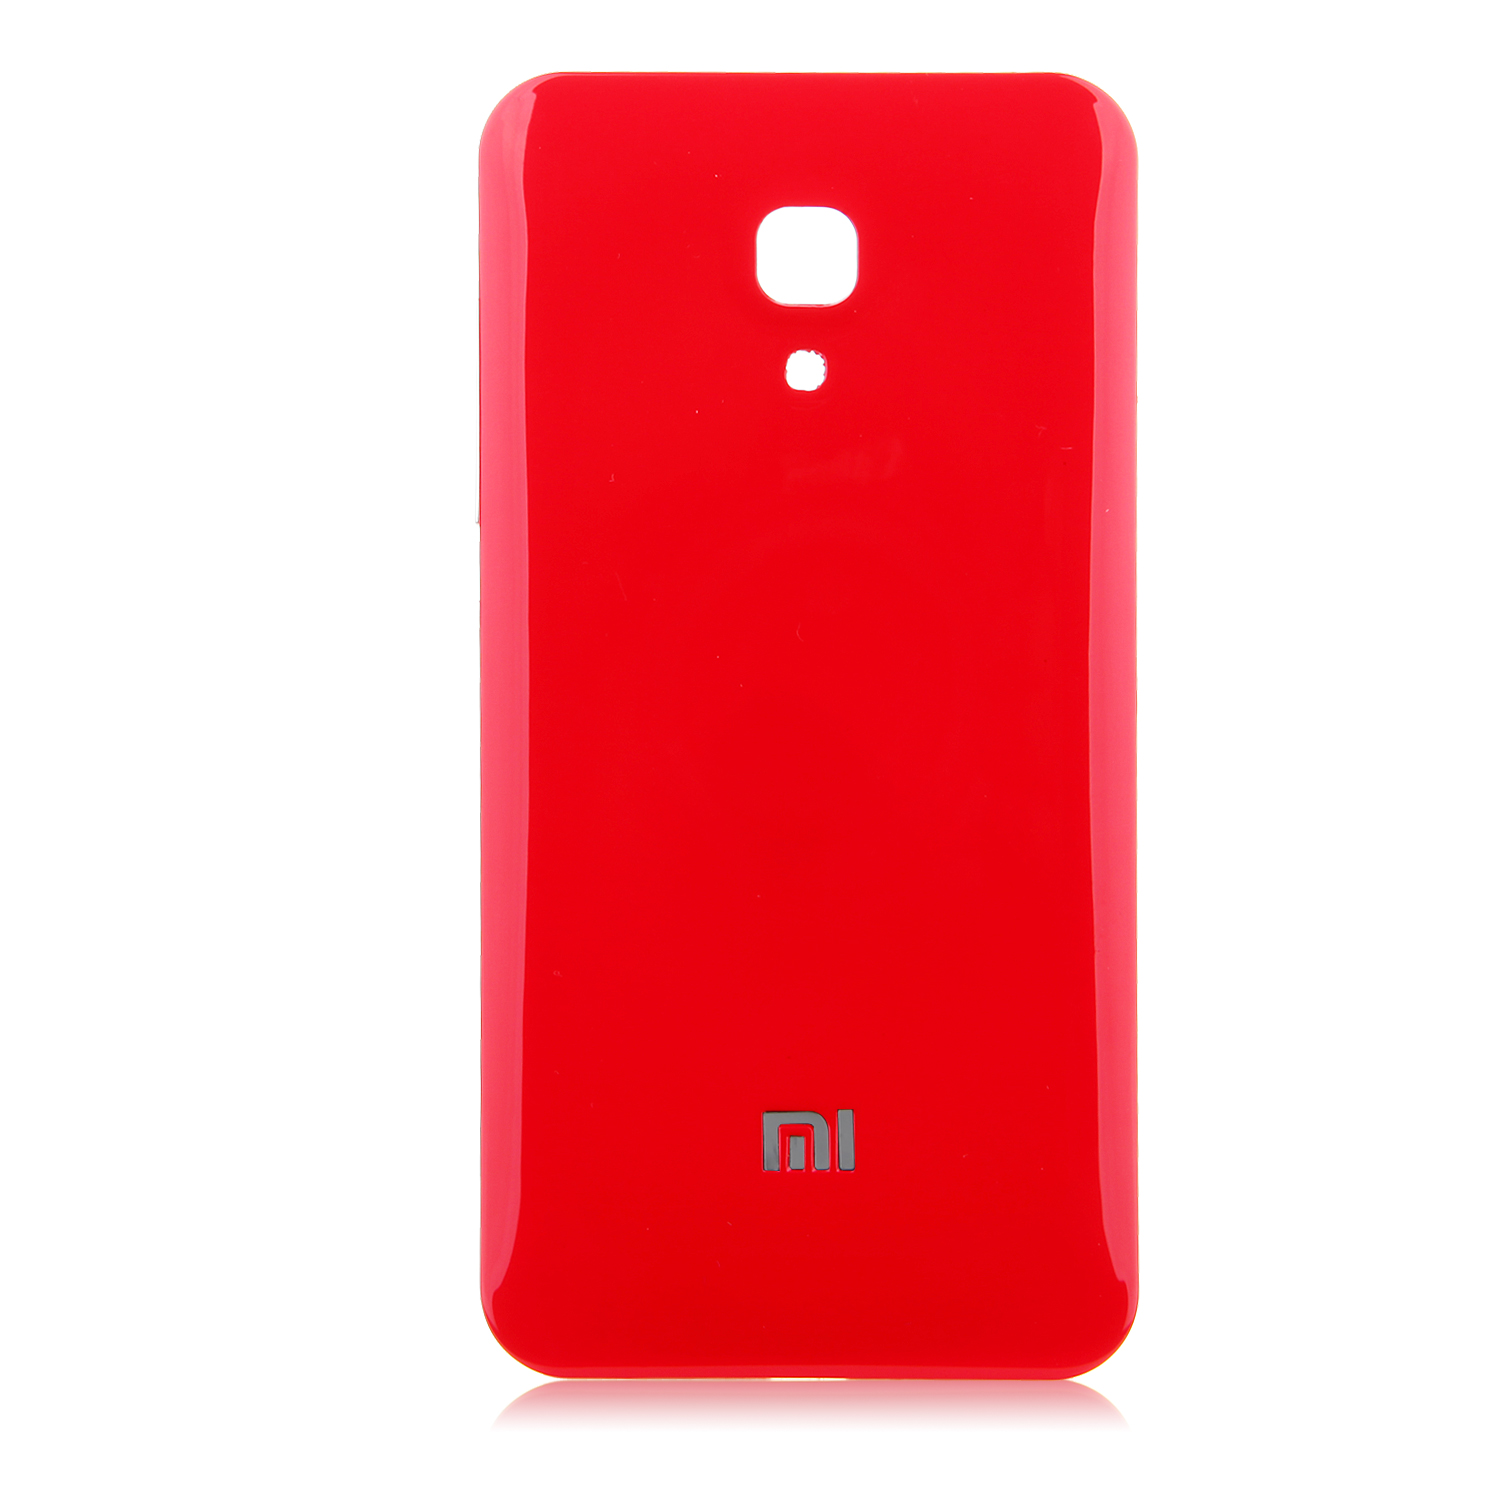 Replacement Battery Cover Back Case for XIAOMI 2A Smartphone Red